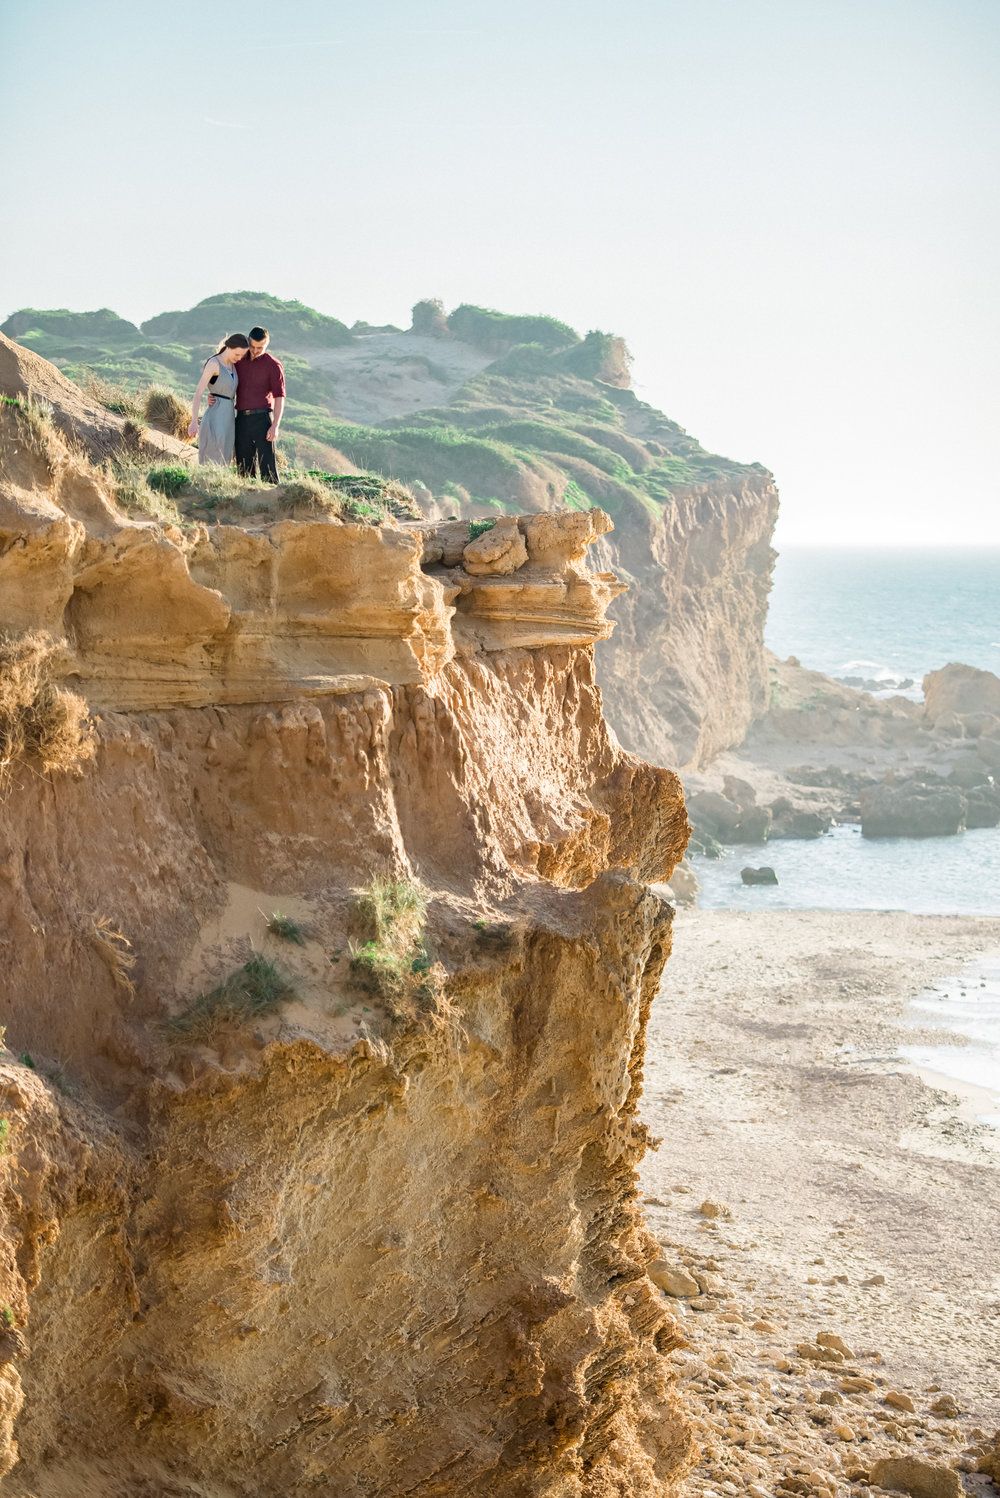 Cliffside-beach-engagement-session-hadera-israel-kate-giryes-photography-9151.jpg